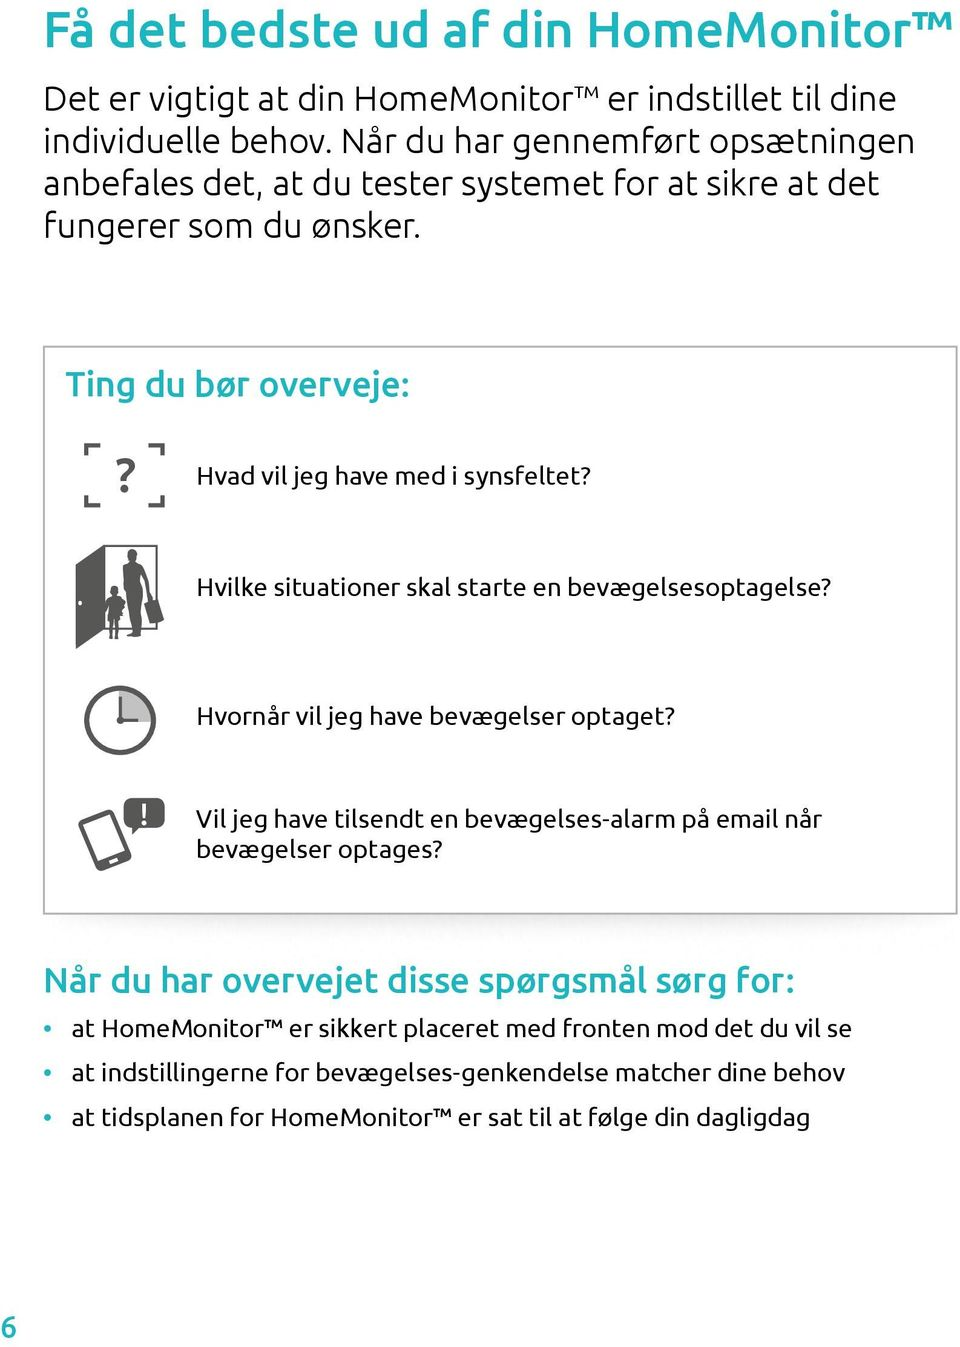 Once you have completed fungerer som du ønsker. the set up process it is advisable to test it so you are satisfied it will do what you need. Questions Ting du bør you overveje: may want to consider:?